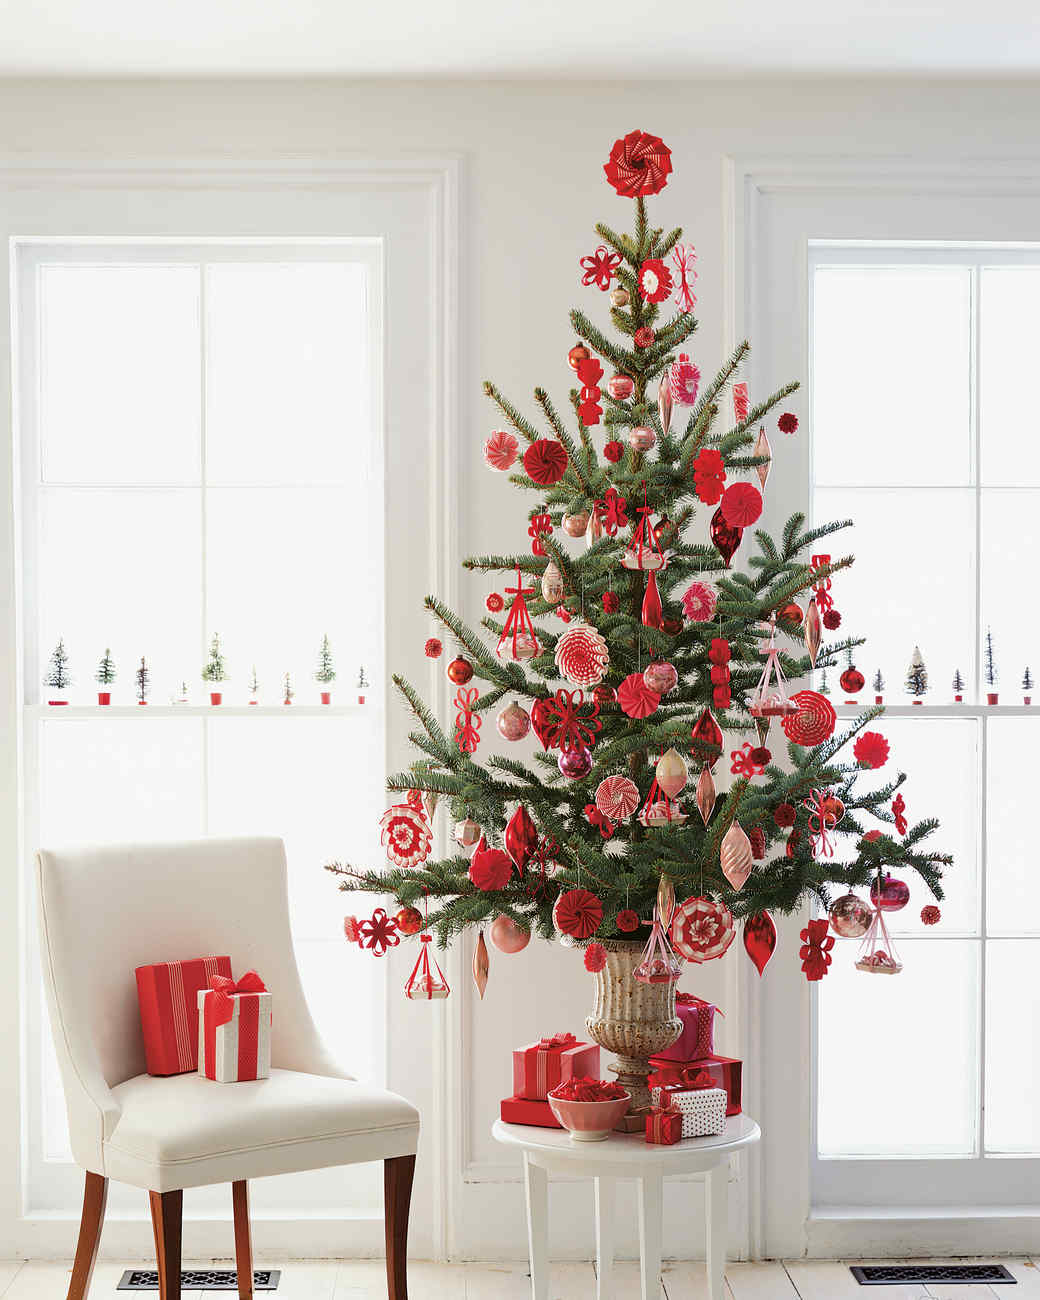 Red and white christmas tree decorating ideas - Red And White Christmas Tree Decorating Ideas 7